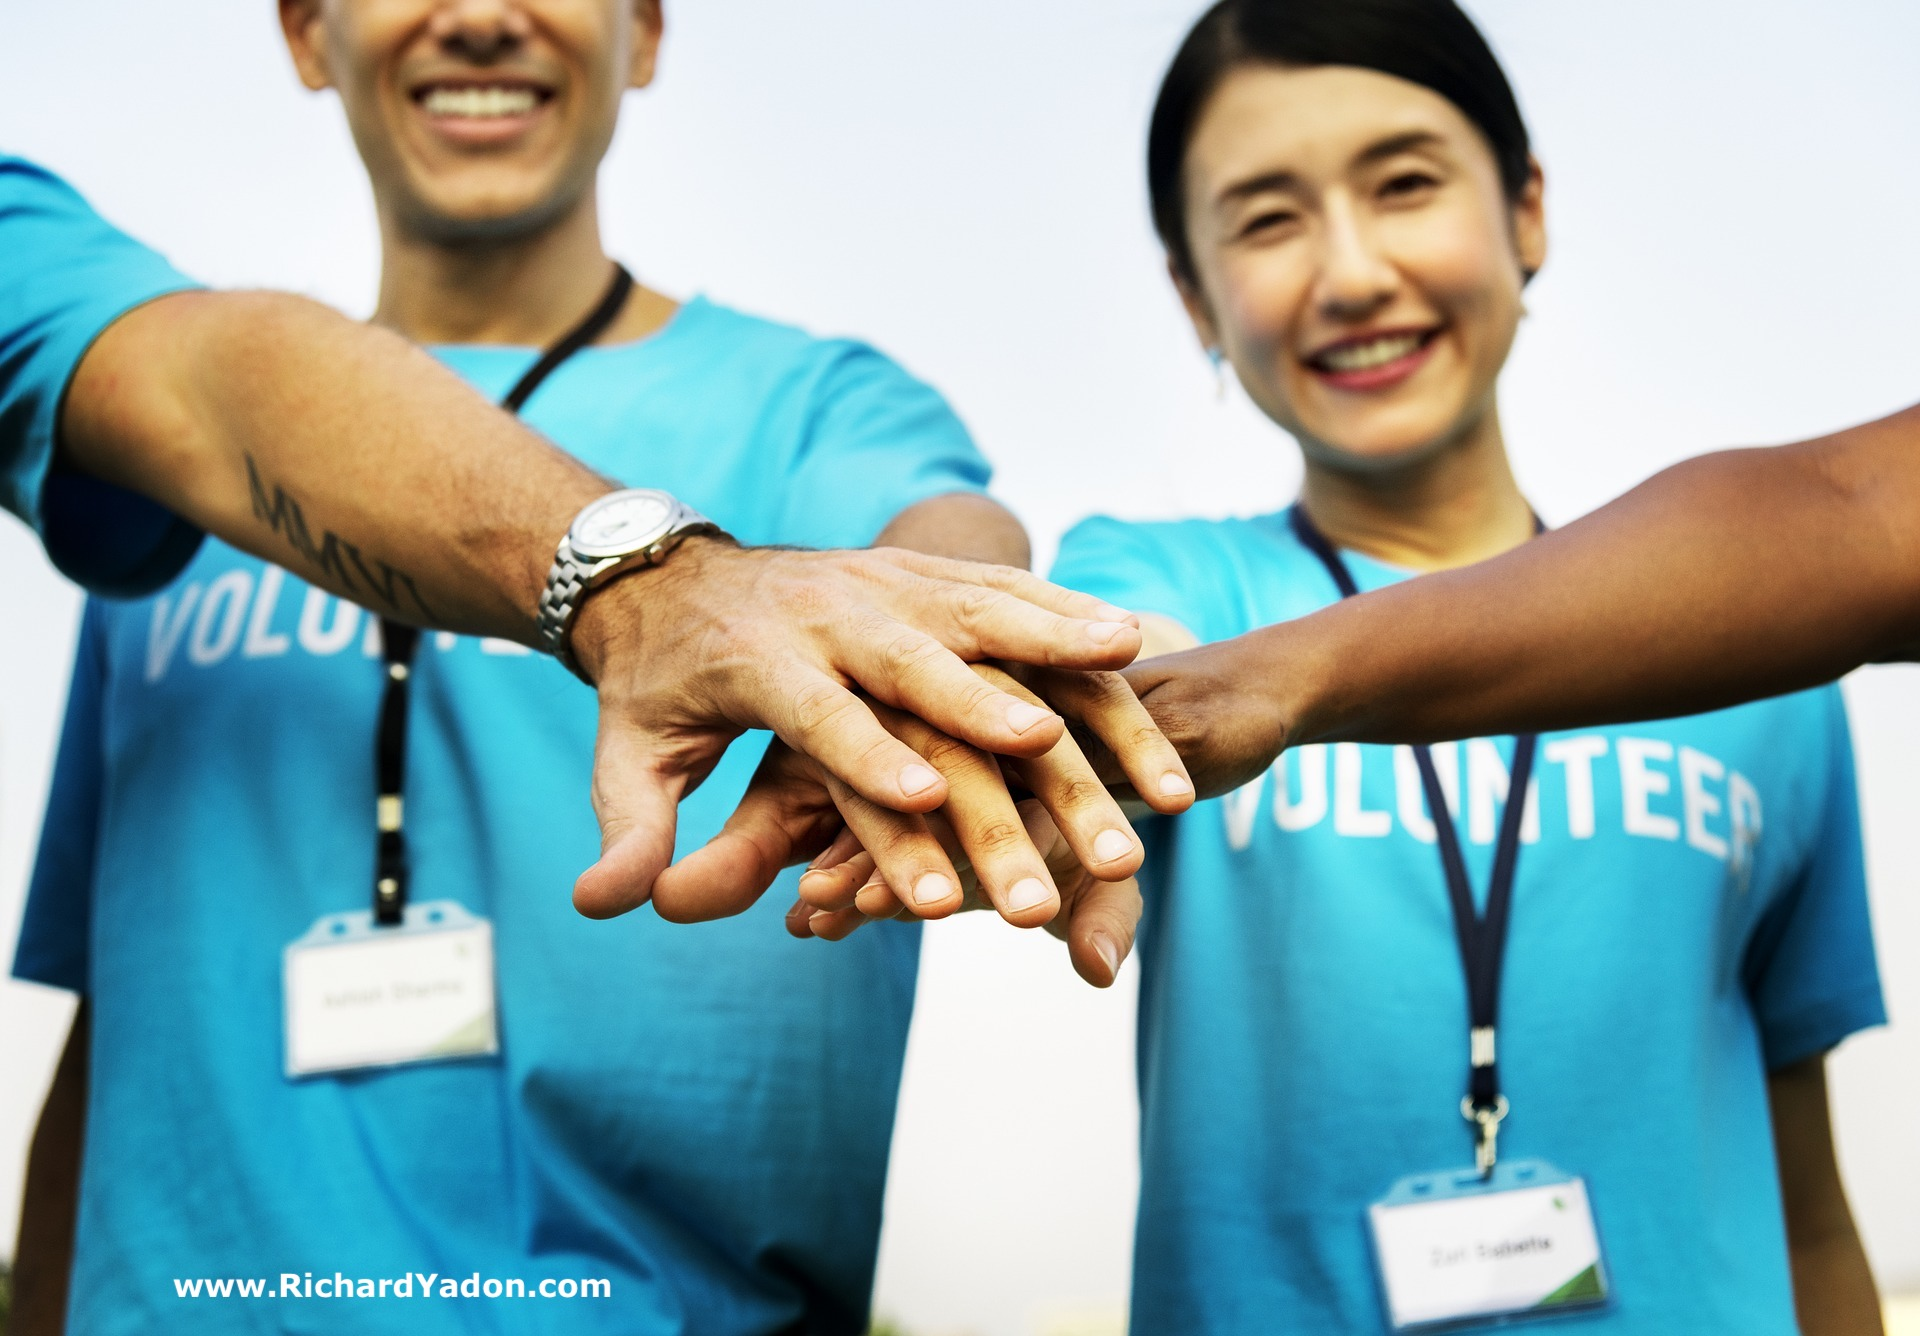 Volunteering As Balanced Life Therapy